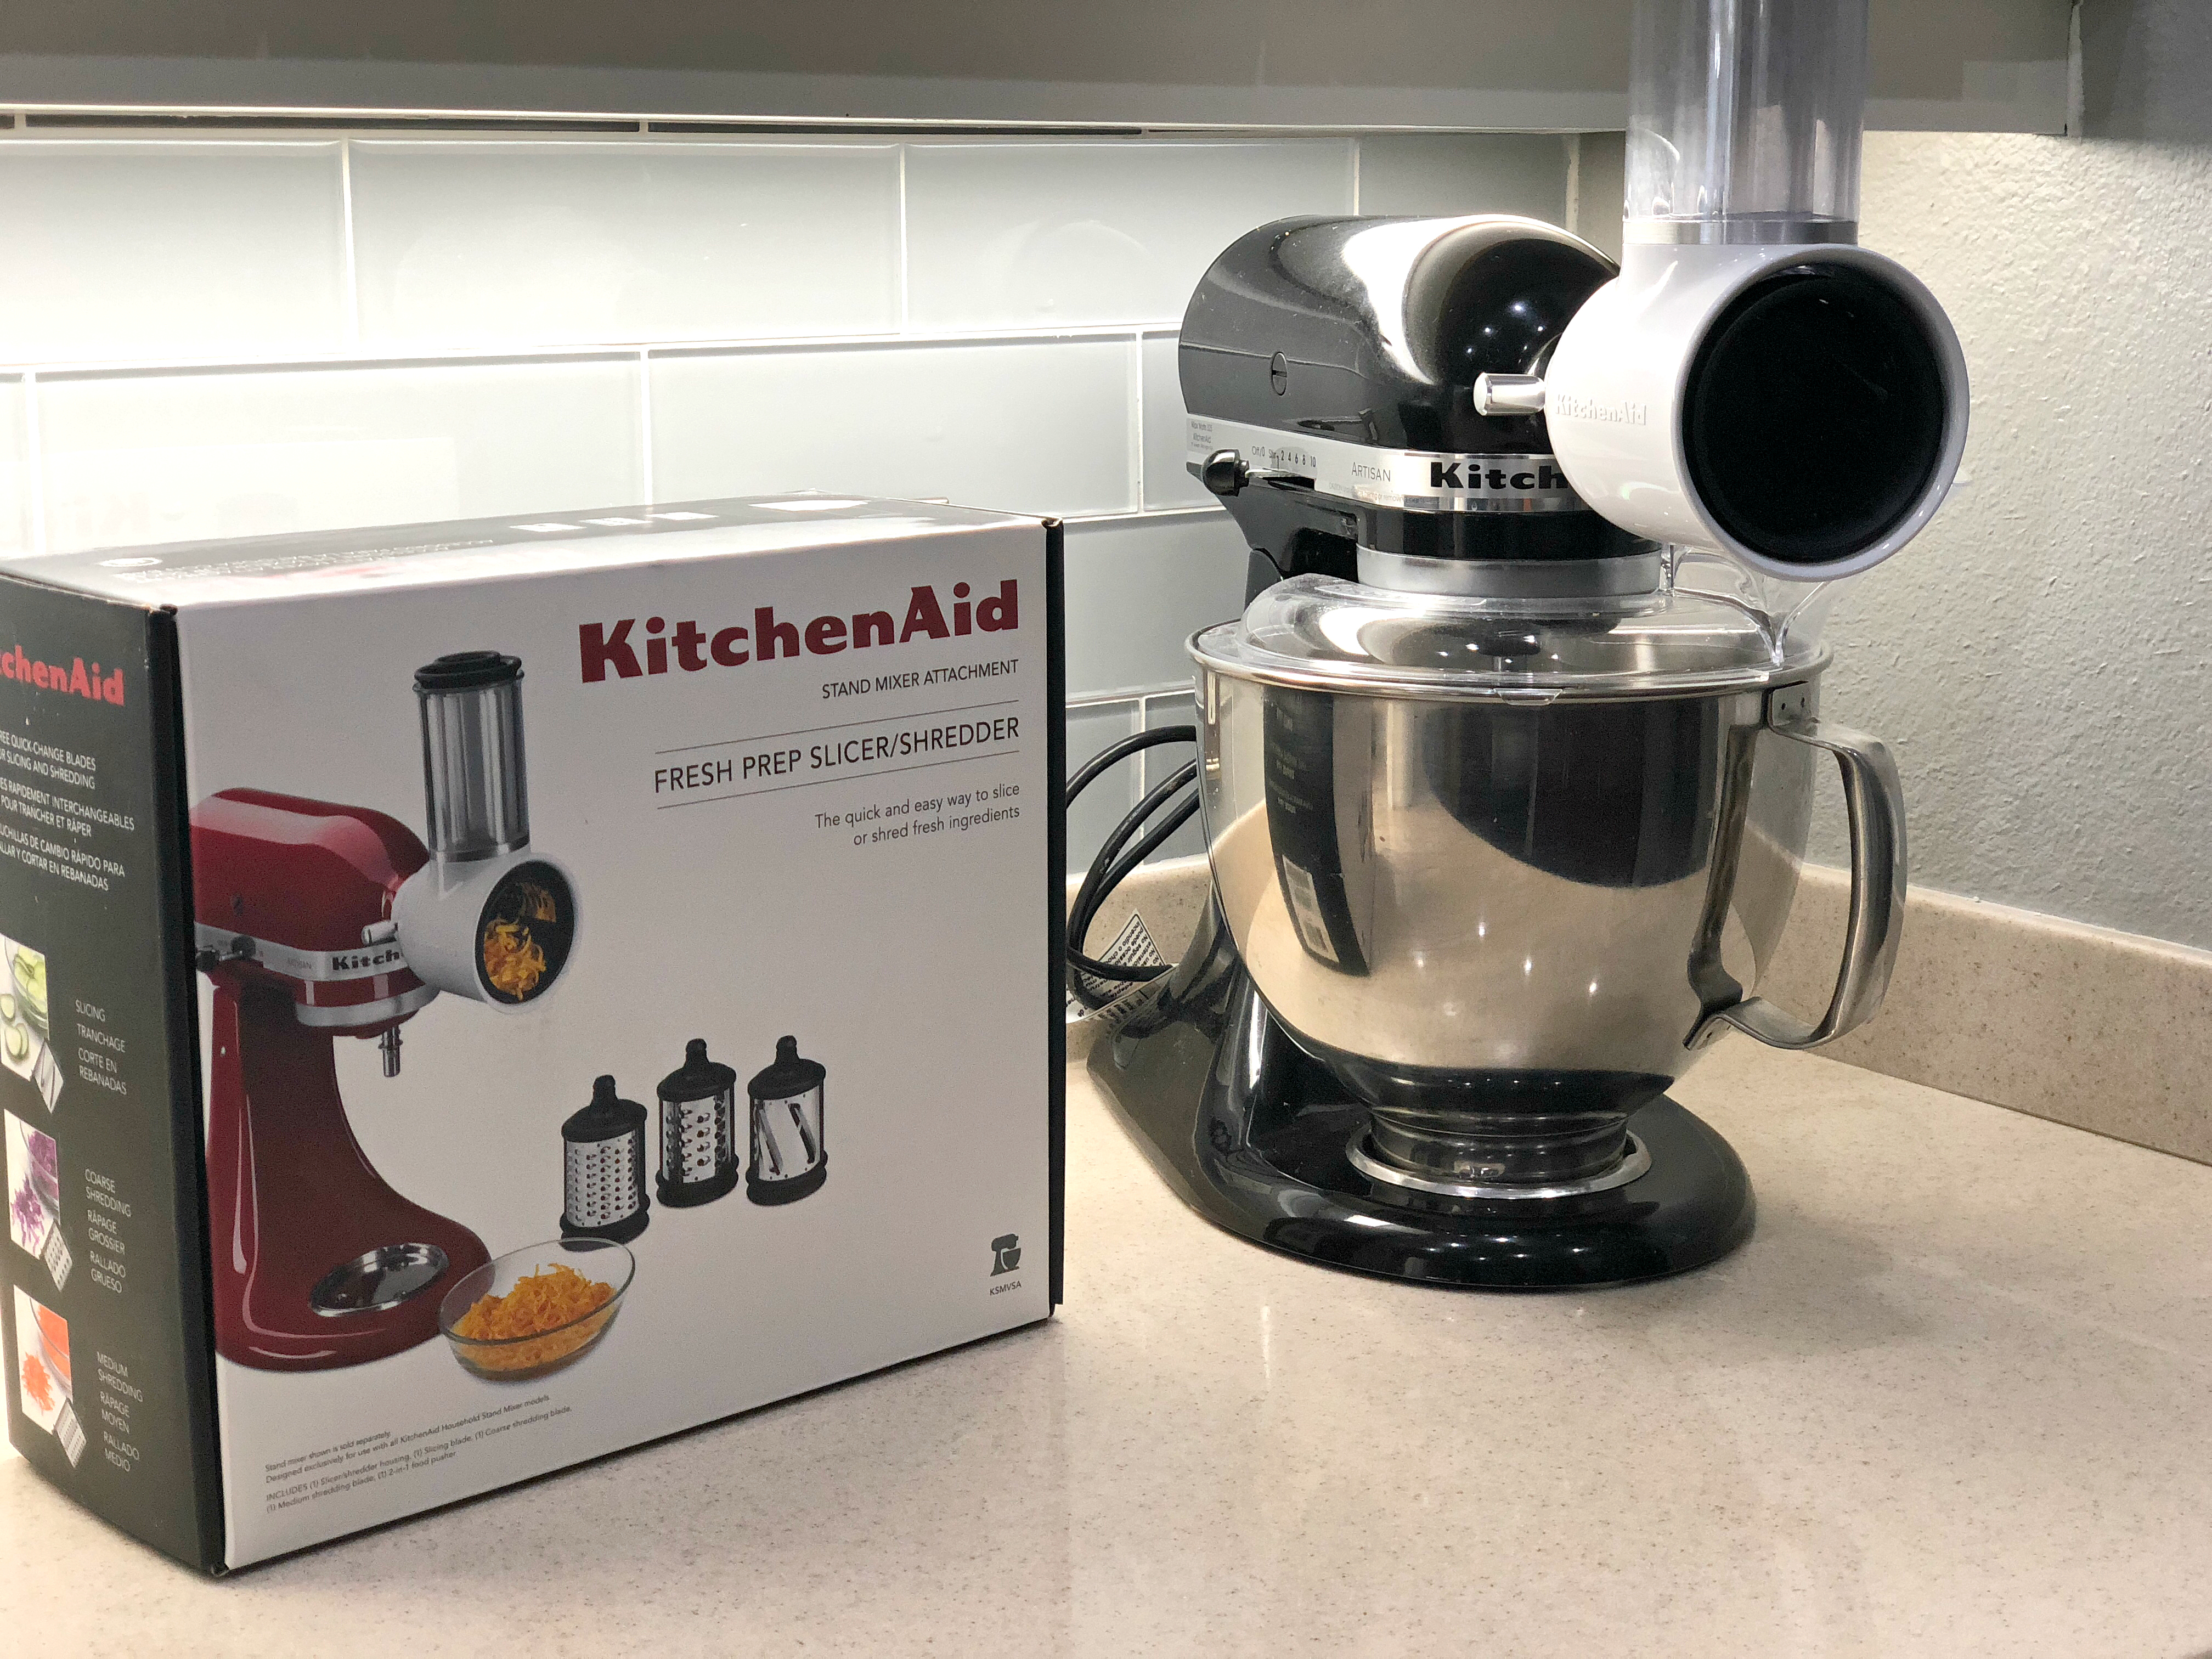 Kitchenaid Slicer Attachment for Hip2Keto